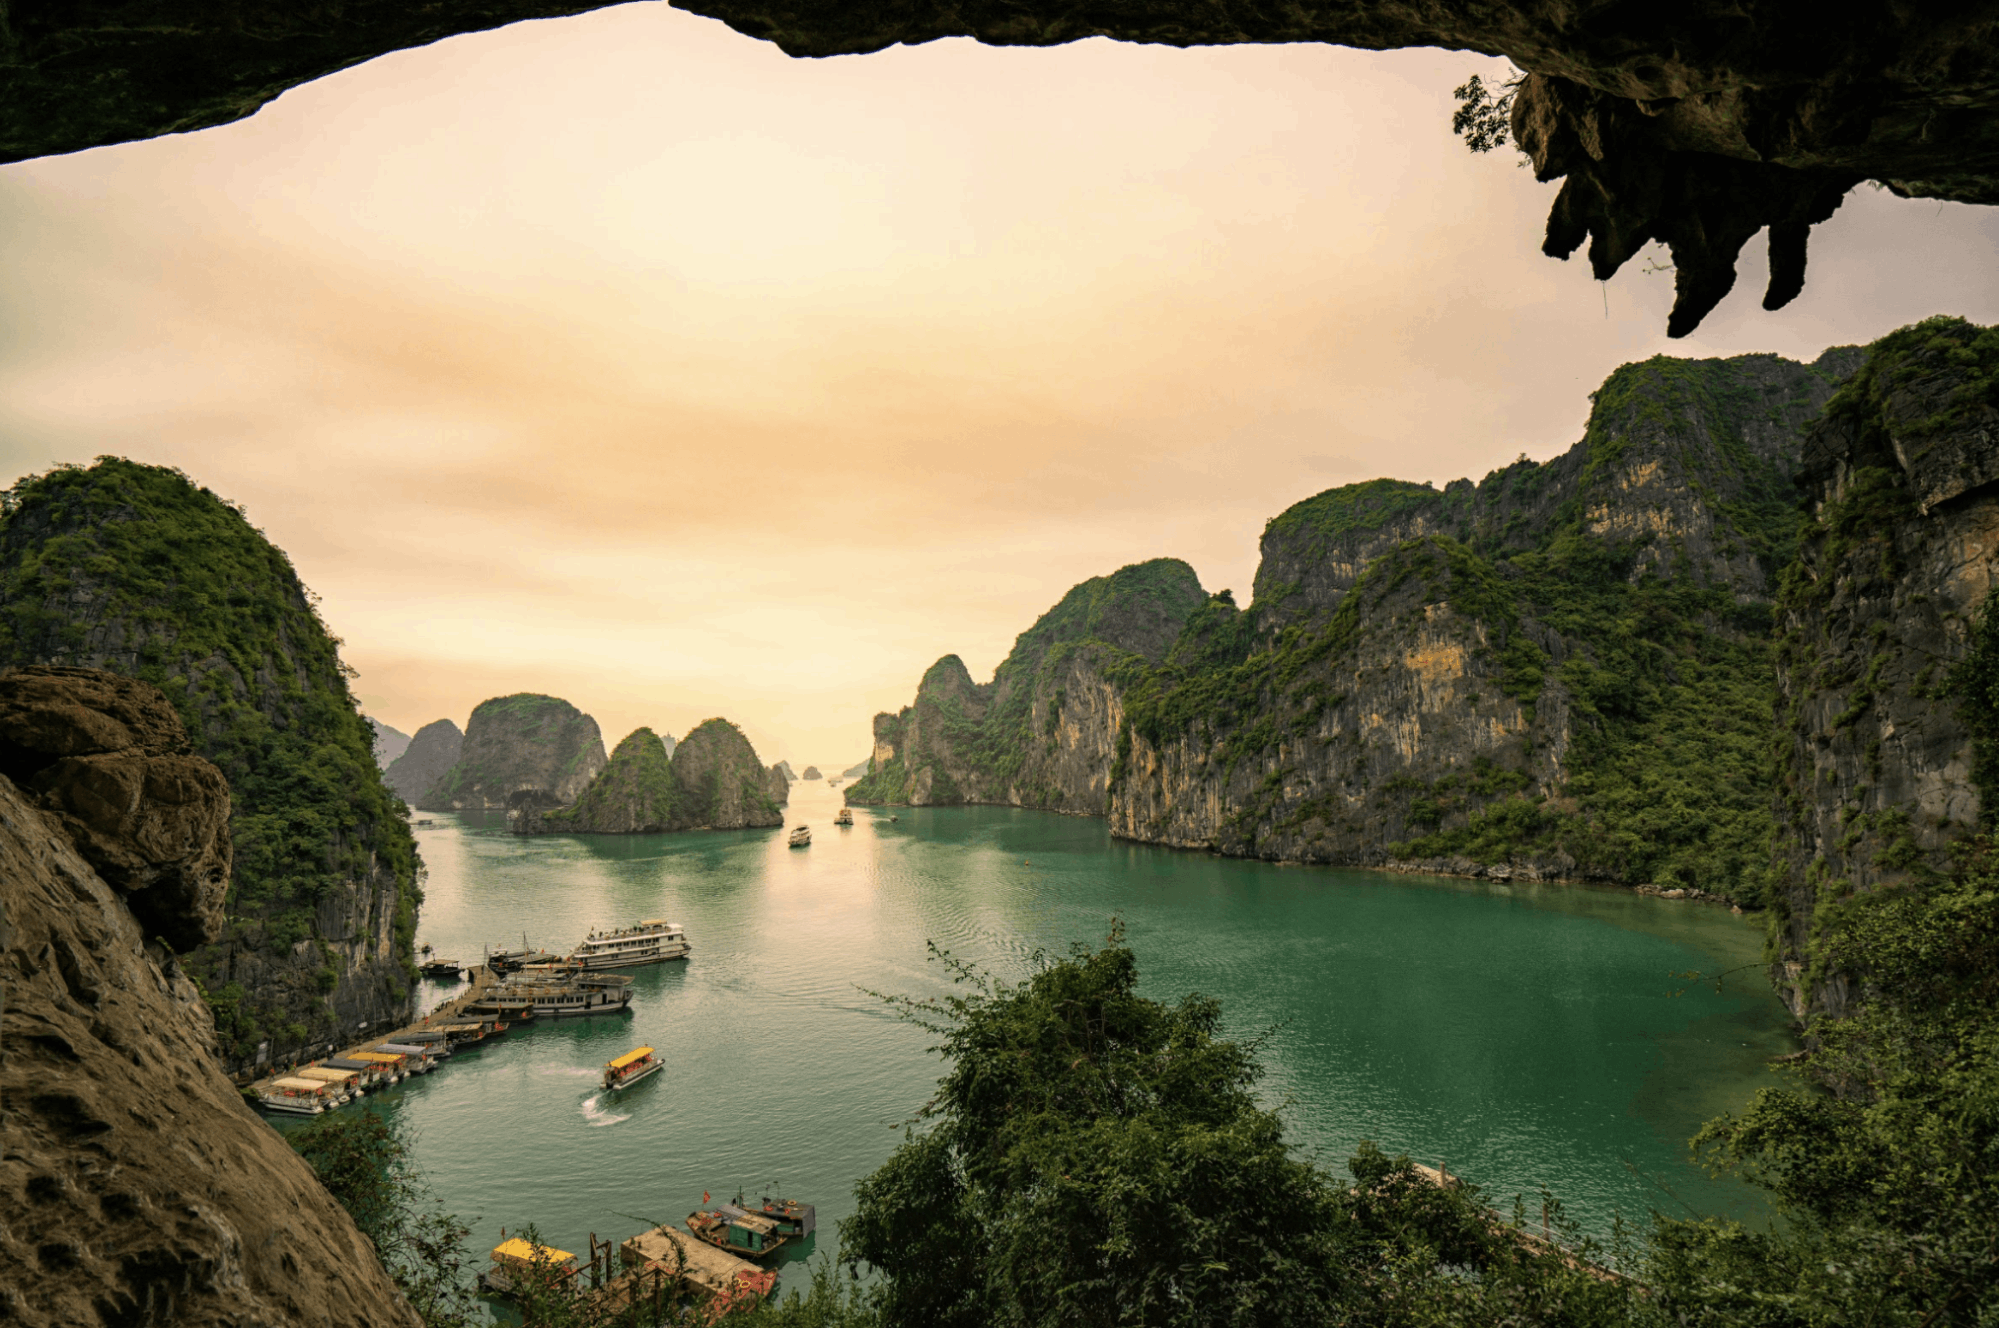 Halong Bay has Two Other Twins, Here's How to Choose Between Them